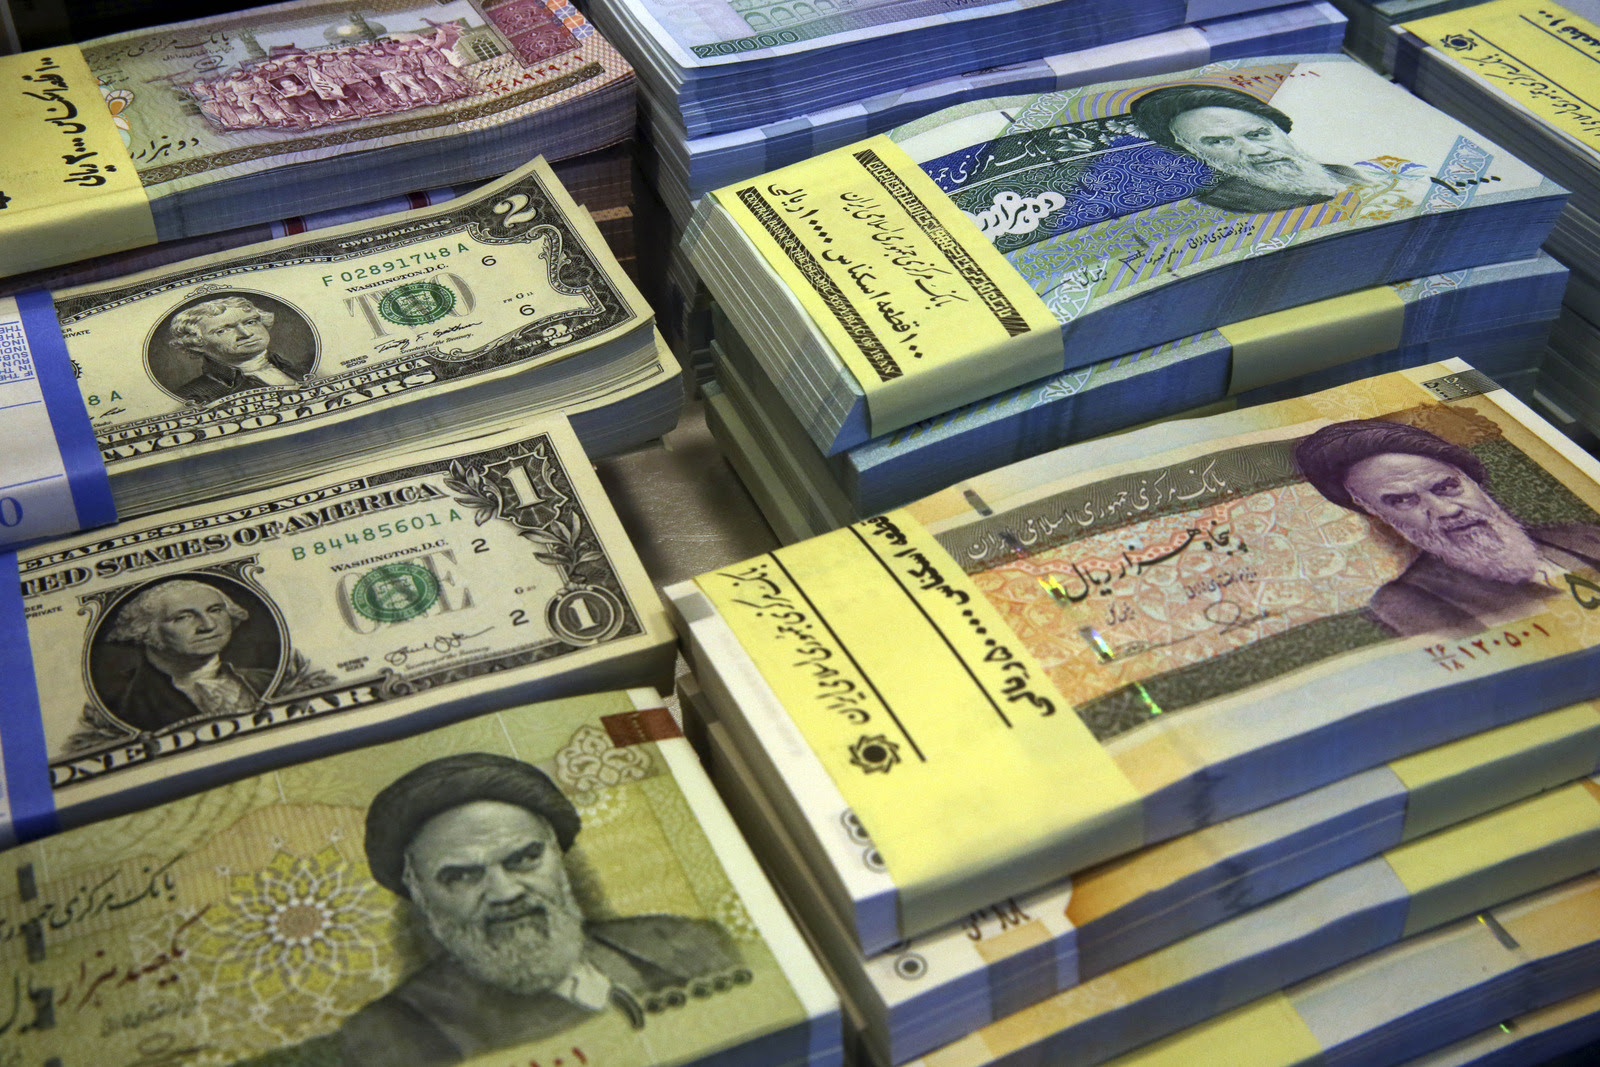 Iranian and U.S. banknotes are on display at a currency exchange shop in downtown Tehran, Iran. (AP/Vahid Salemi)